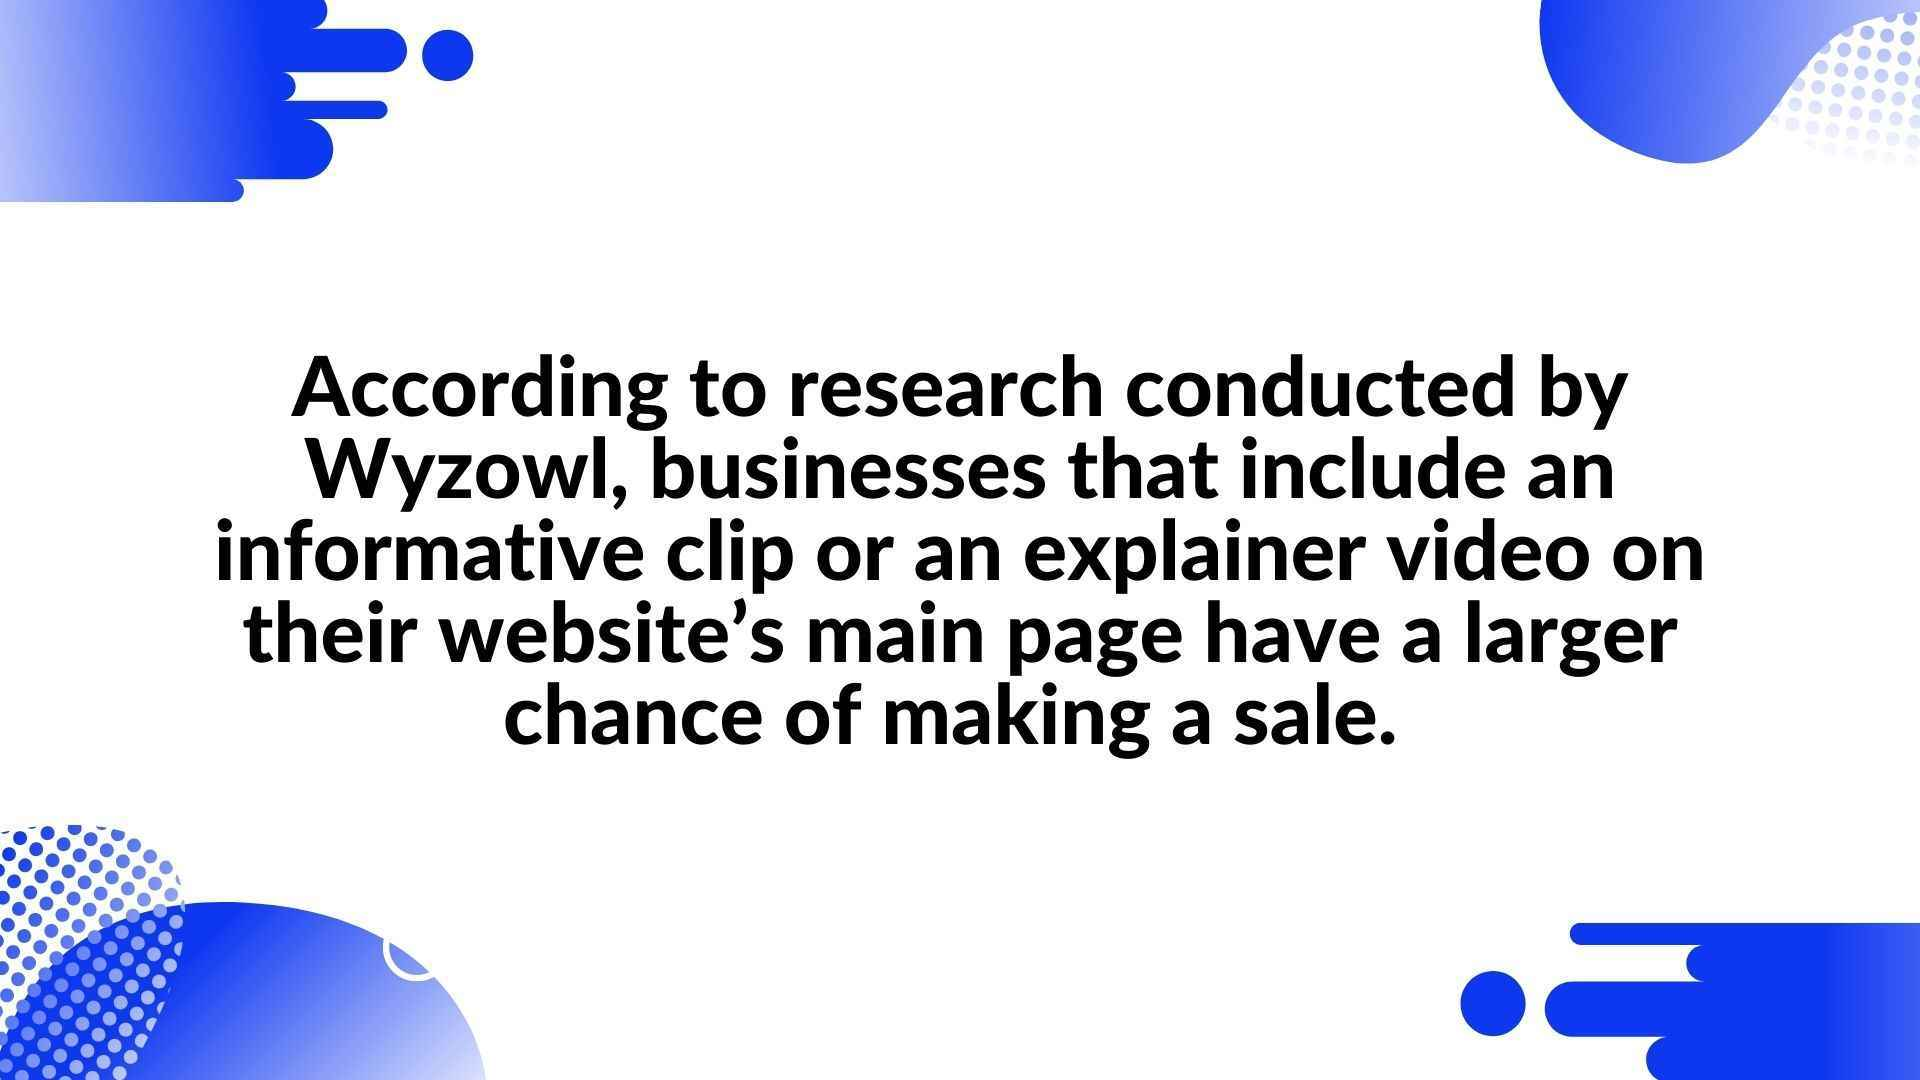 According to research conducted by Wyzowl, businesses that include an informative clip or an explainer video on their website's main page have a larger chance of making a sale. - Boost your online shop with an animated video